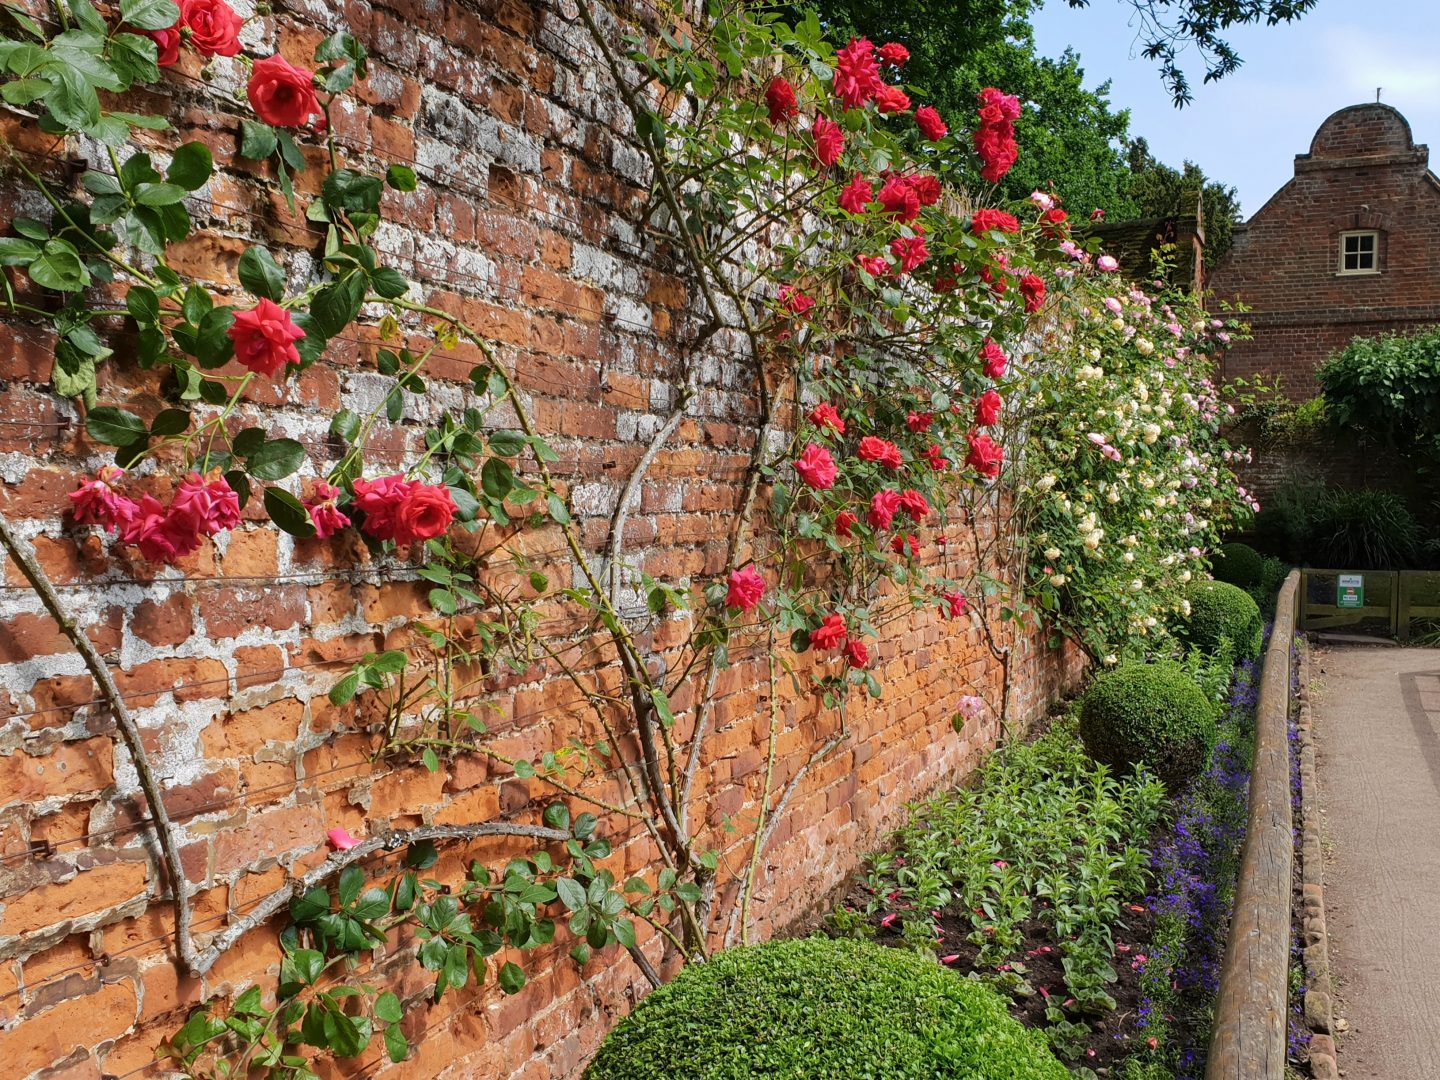 Walled rose garden at Howletts, Kent